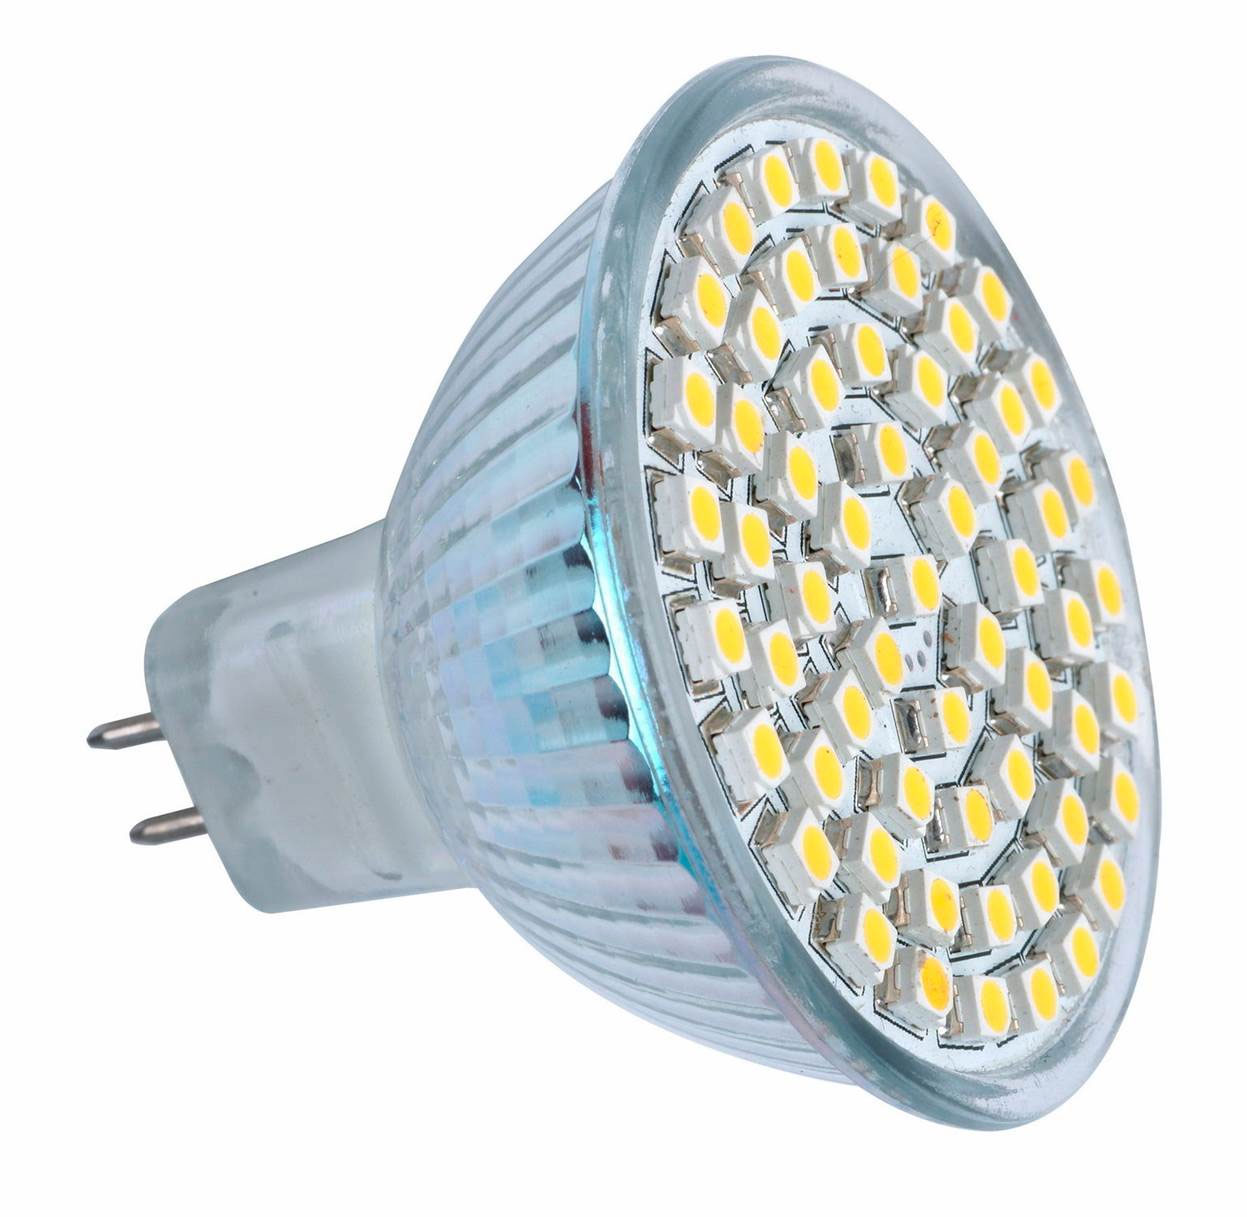 Eco Friendly LED Lighting